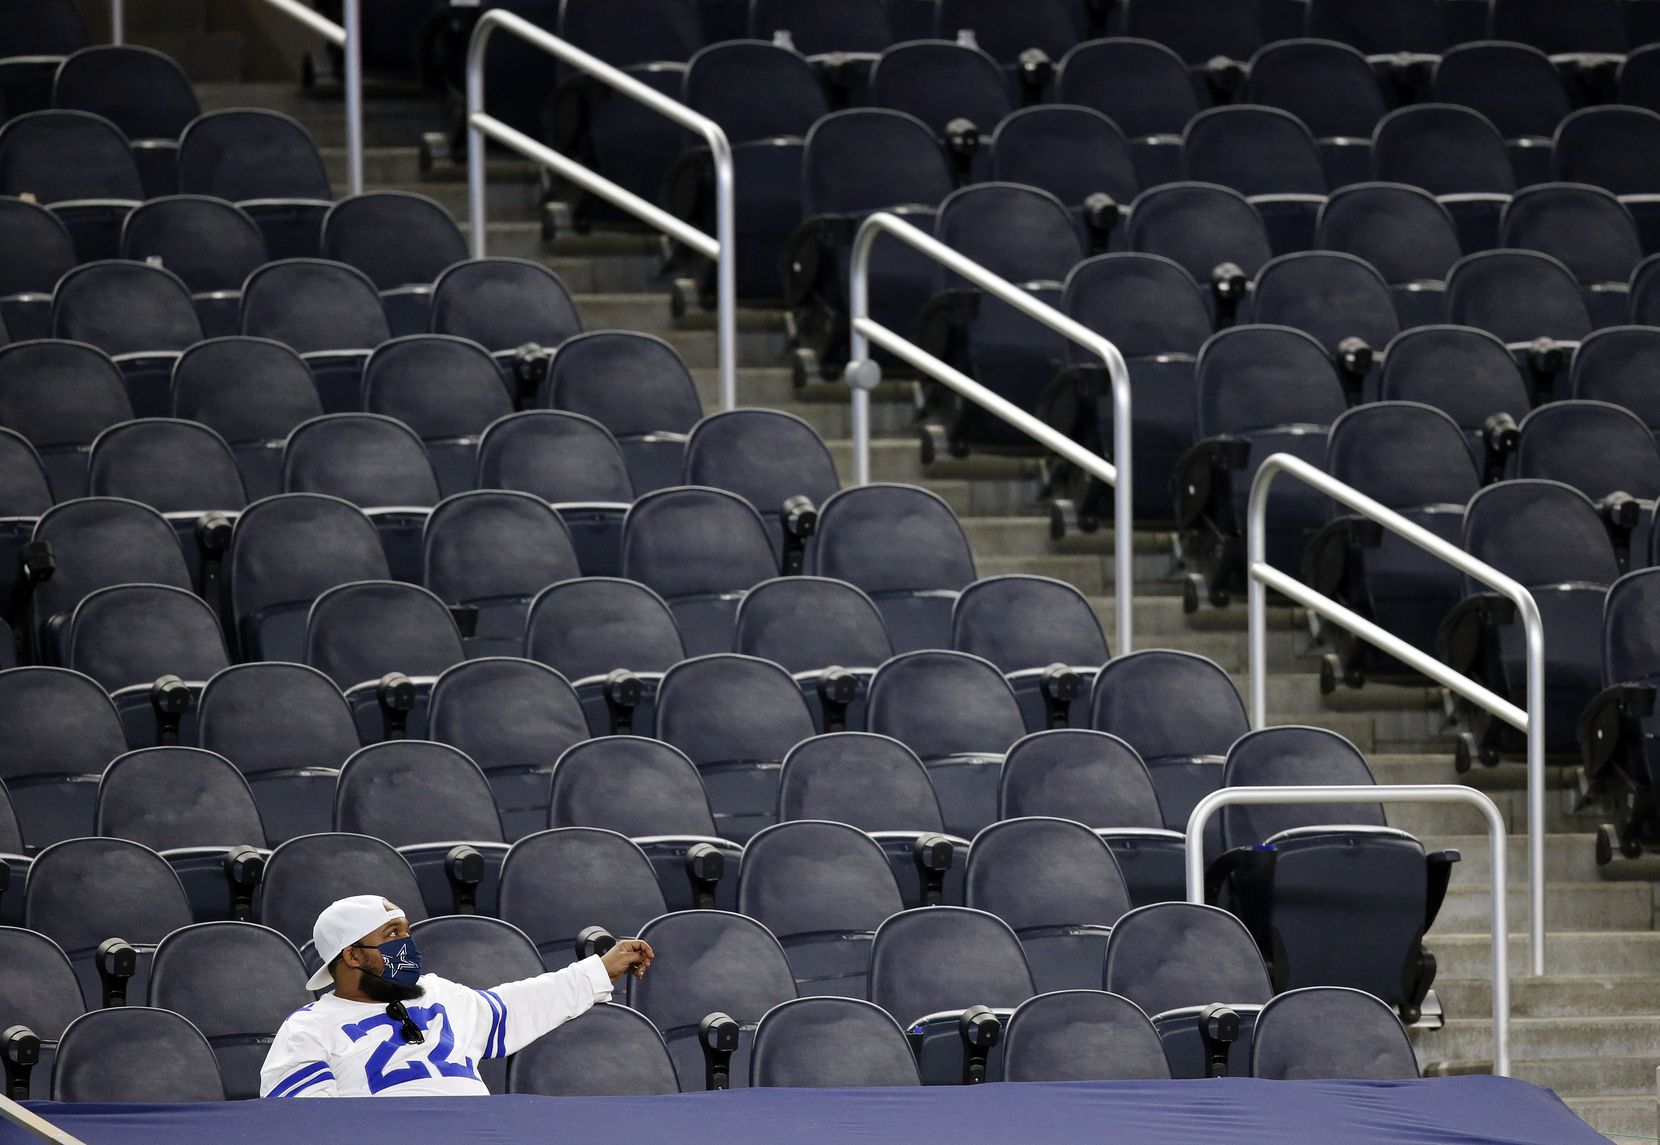 A lone Dallas Cowboys fan watches  from a nearly empty section as his team trailed the Washington Football Team in the fourth quarter at AT&T Stadium in Arlington, Thursday, November 26, 2020. The Cowboys lost, 41-16. (Tom Fox/The Dallas Morning News)